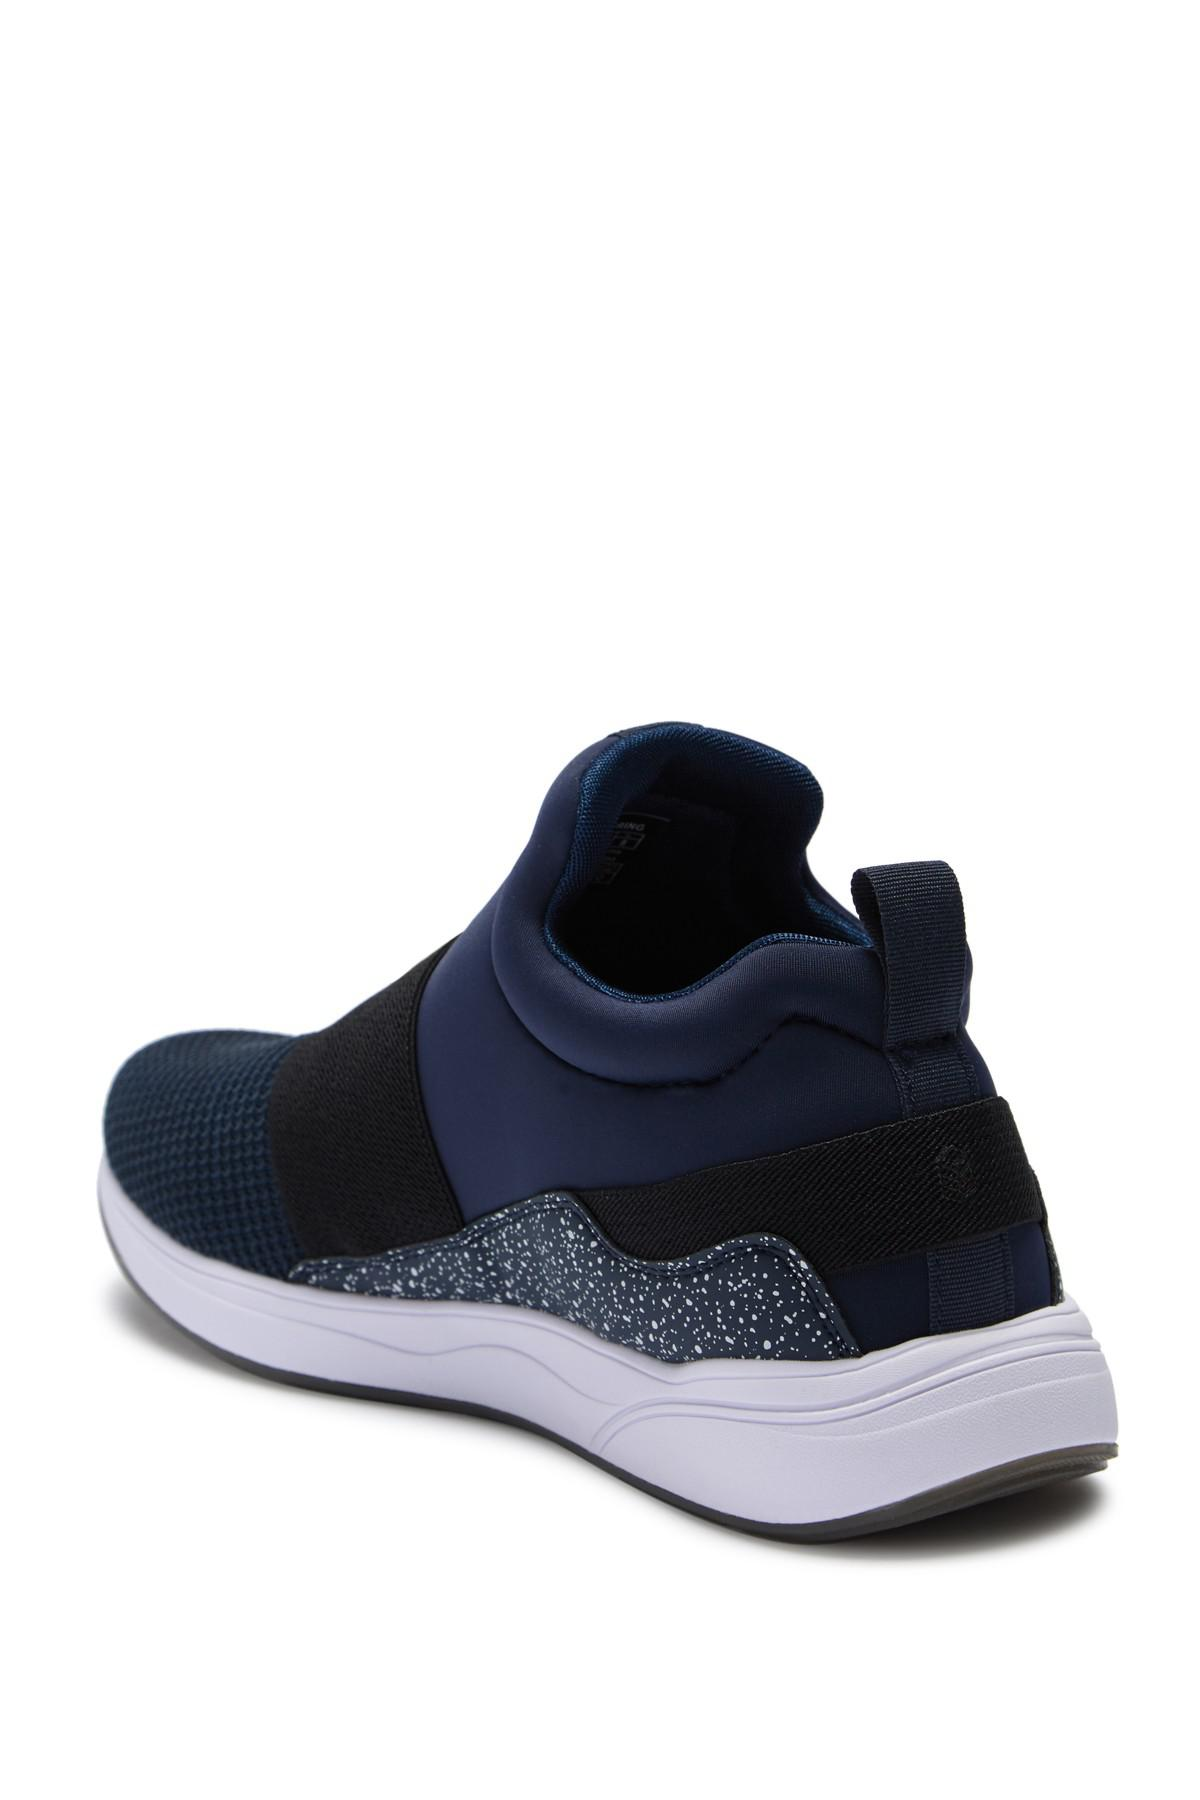 sports shoes 42797 daee9 call-it-spring-2-NAVY-Adoalia-Sneaker.jpeg